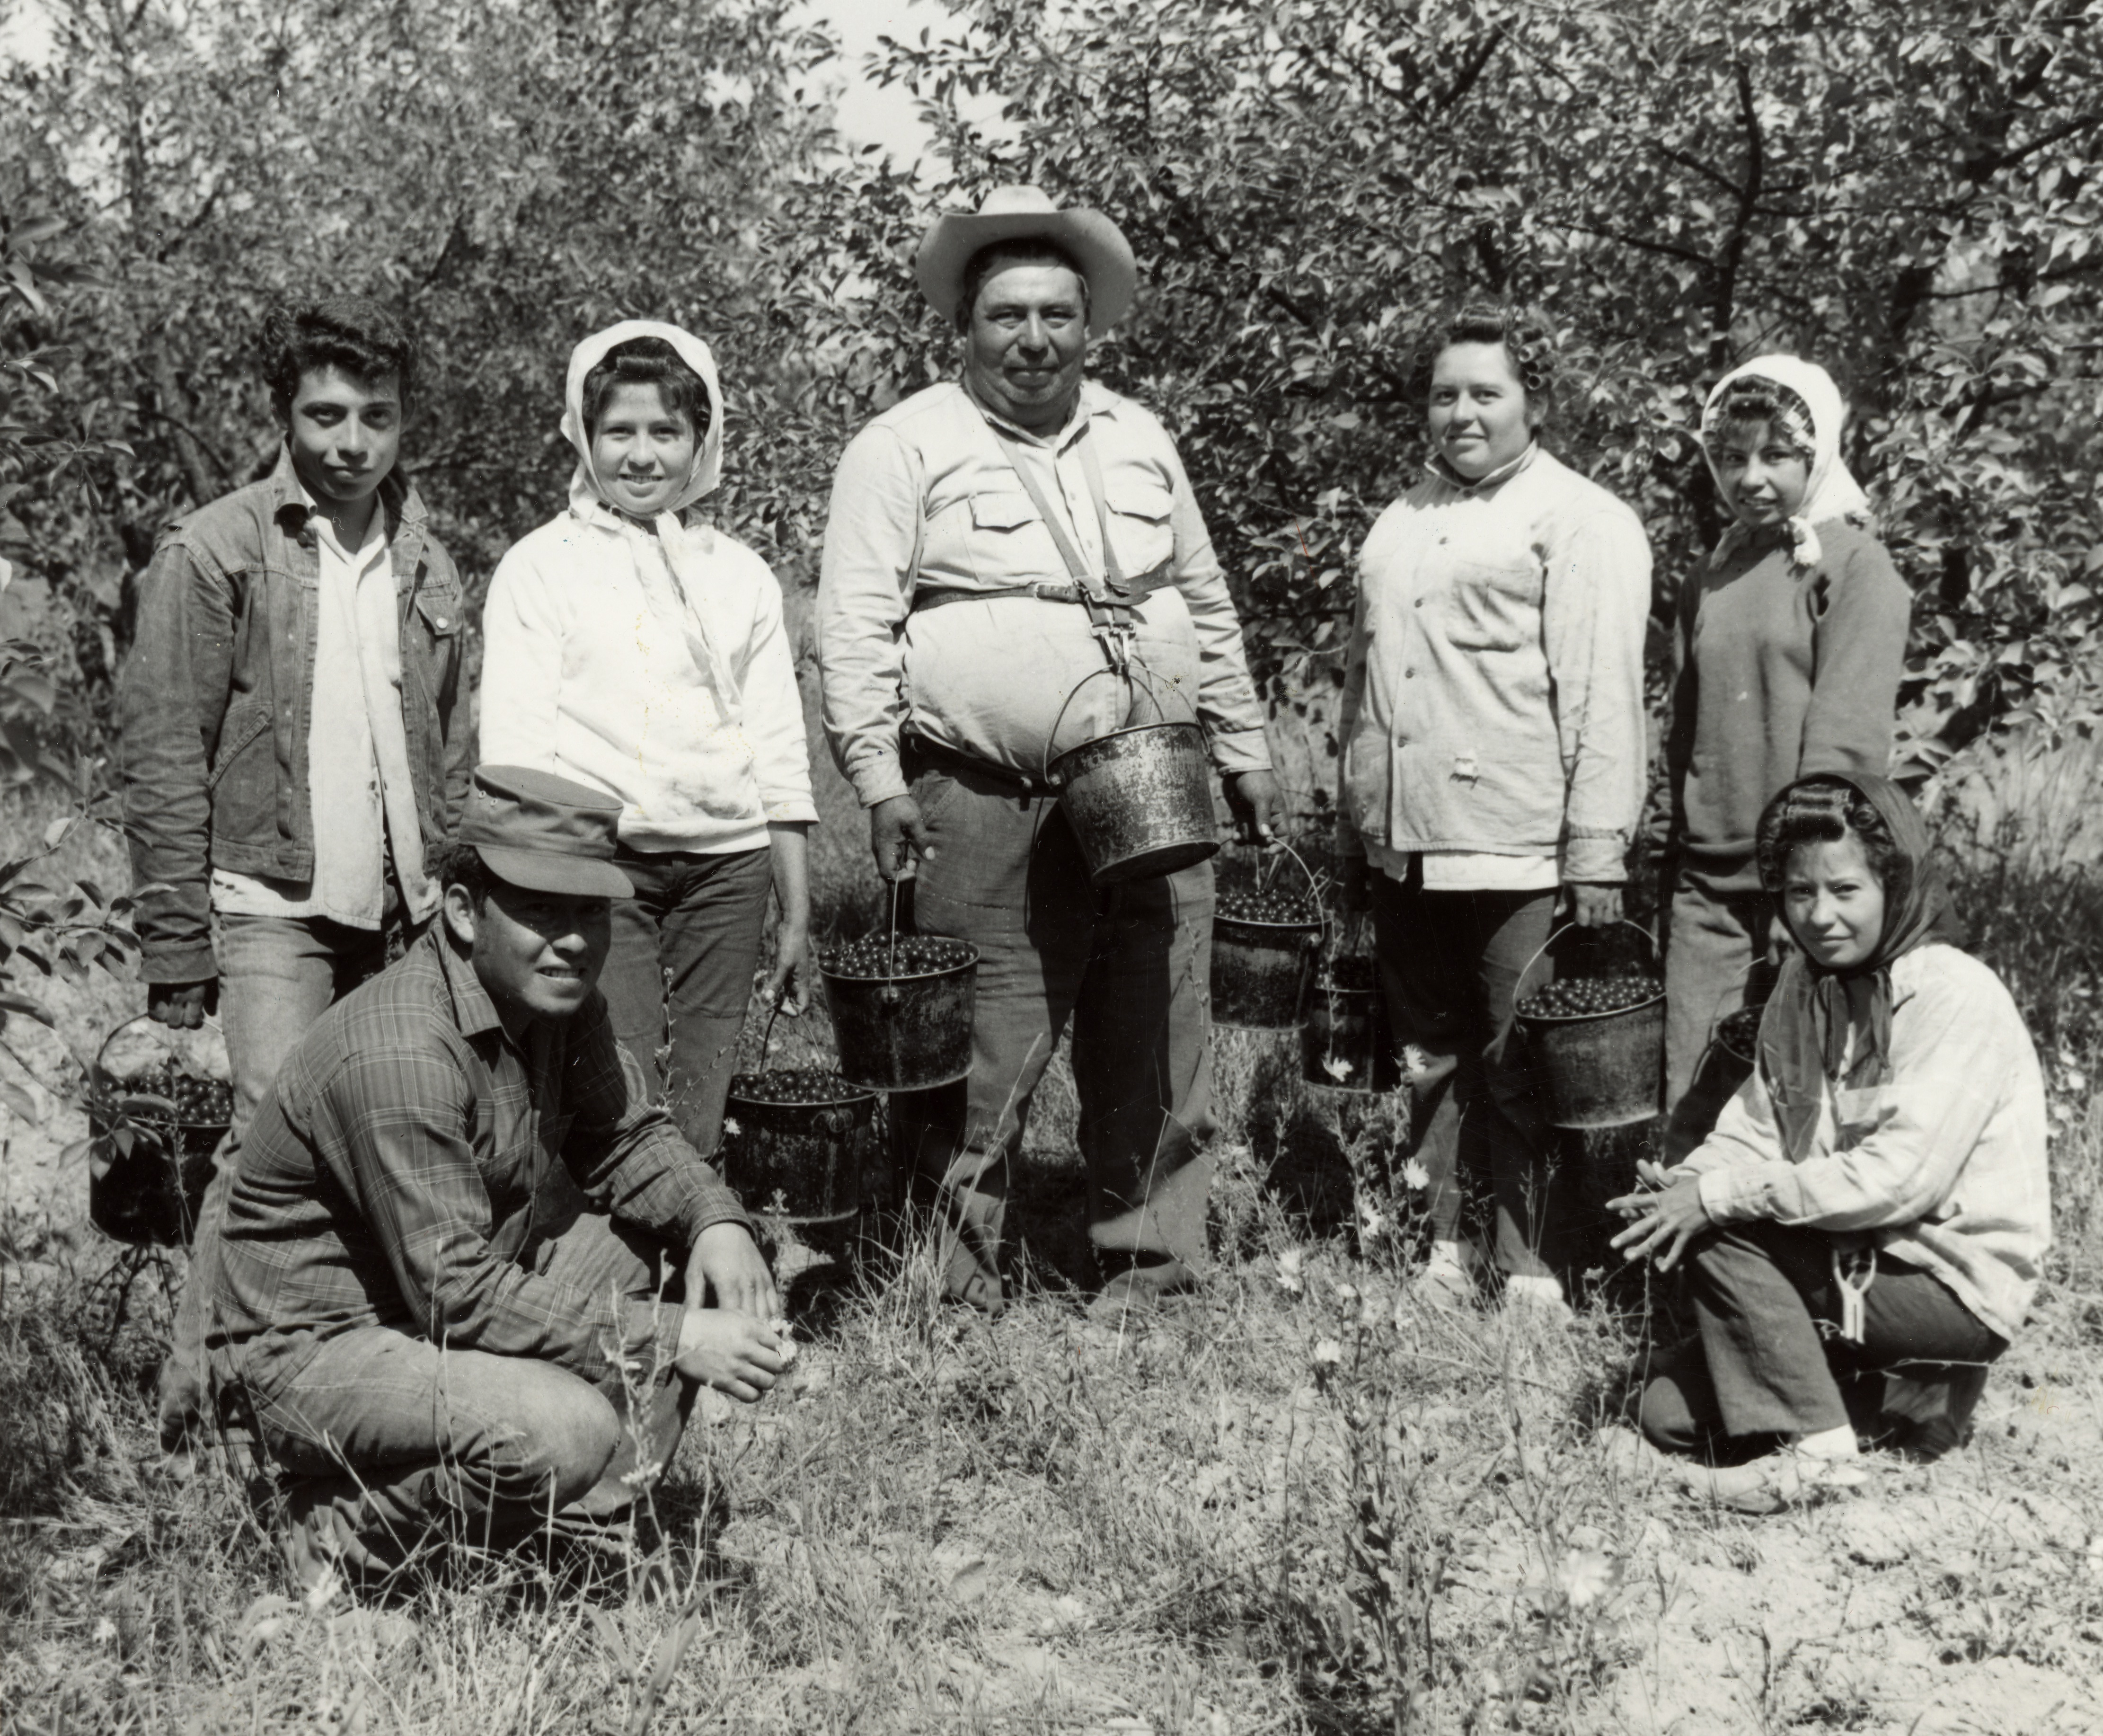 A migrant worker family in a Door County cherry orchard. Image courtesy of the Wisconsin Historical Society. Image ID: 48938.